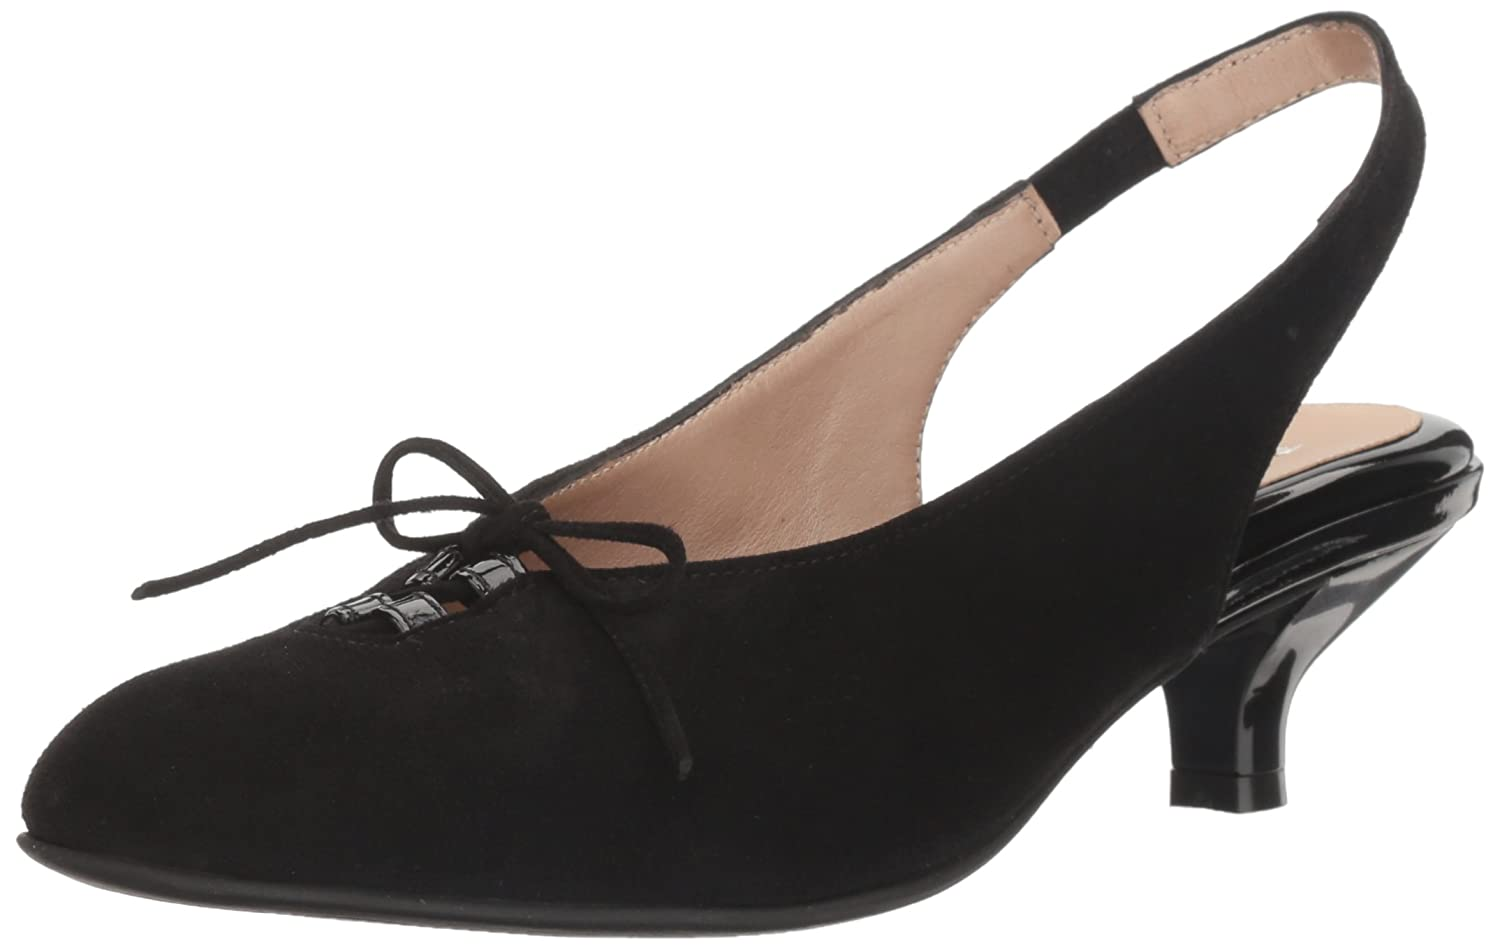 BeautiFeel Women's Gilly Dress Pump B01MYPHC55 39 EU/8-8.5 M US|Black Suede